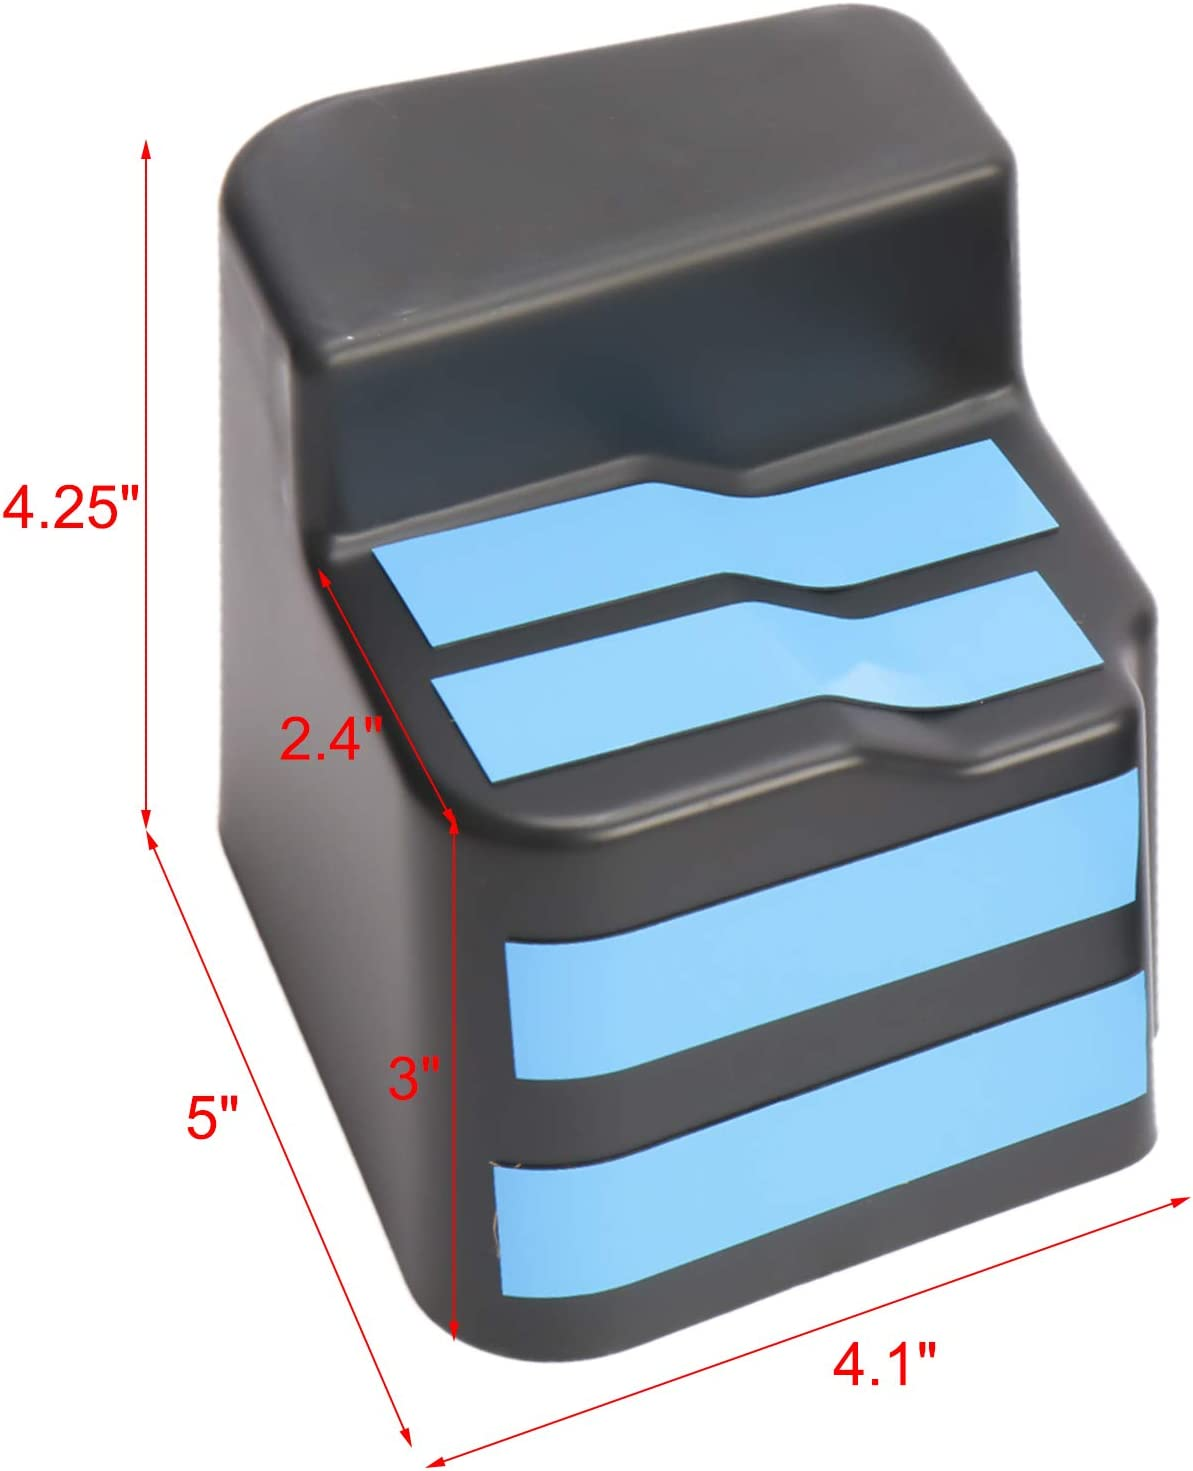 NovelBee 2 Pack of Rear Seat Side Storage Tray Organizer Box Fit for 2018-2020 Jeep Wrangler JL 2020 Jeep Gladiator JT